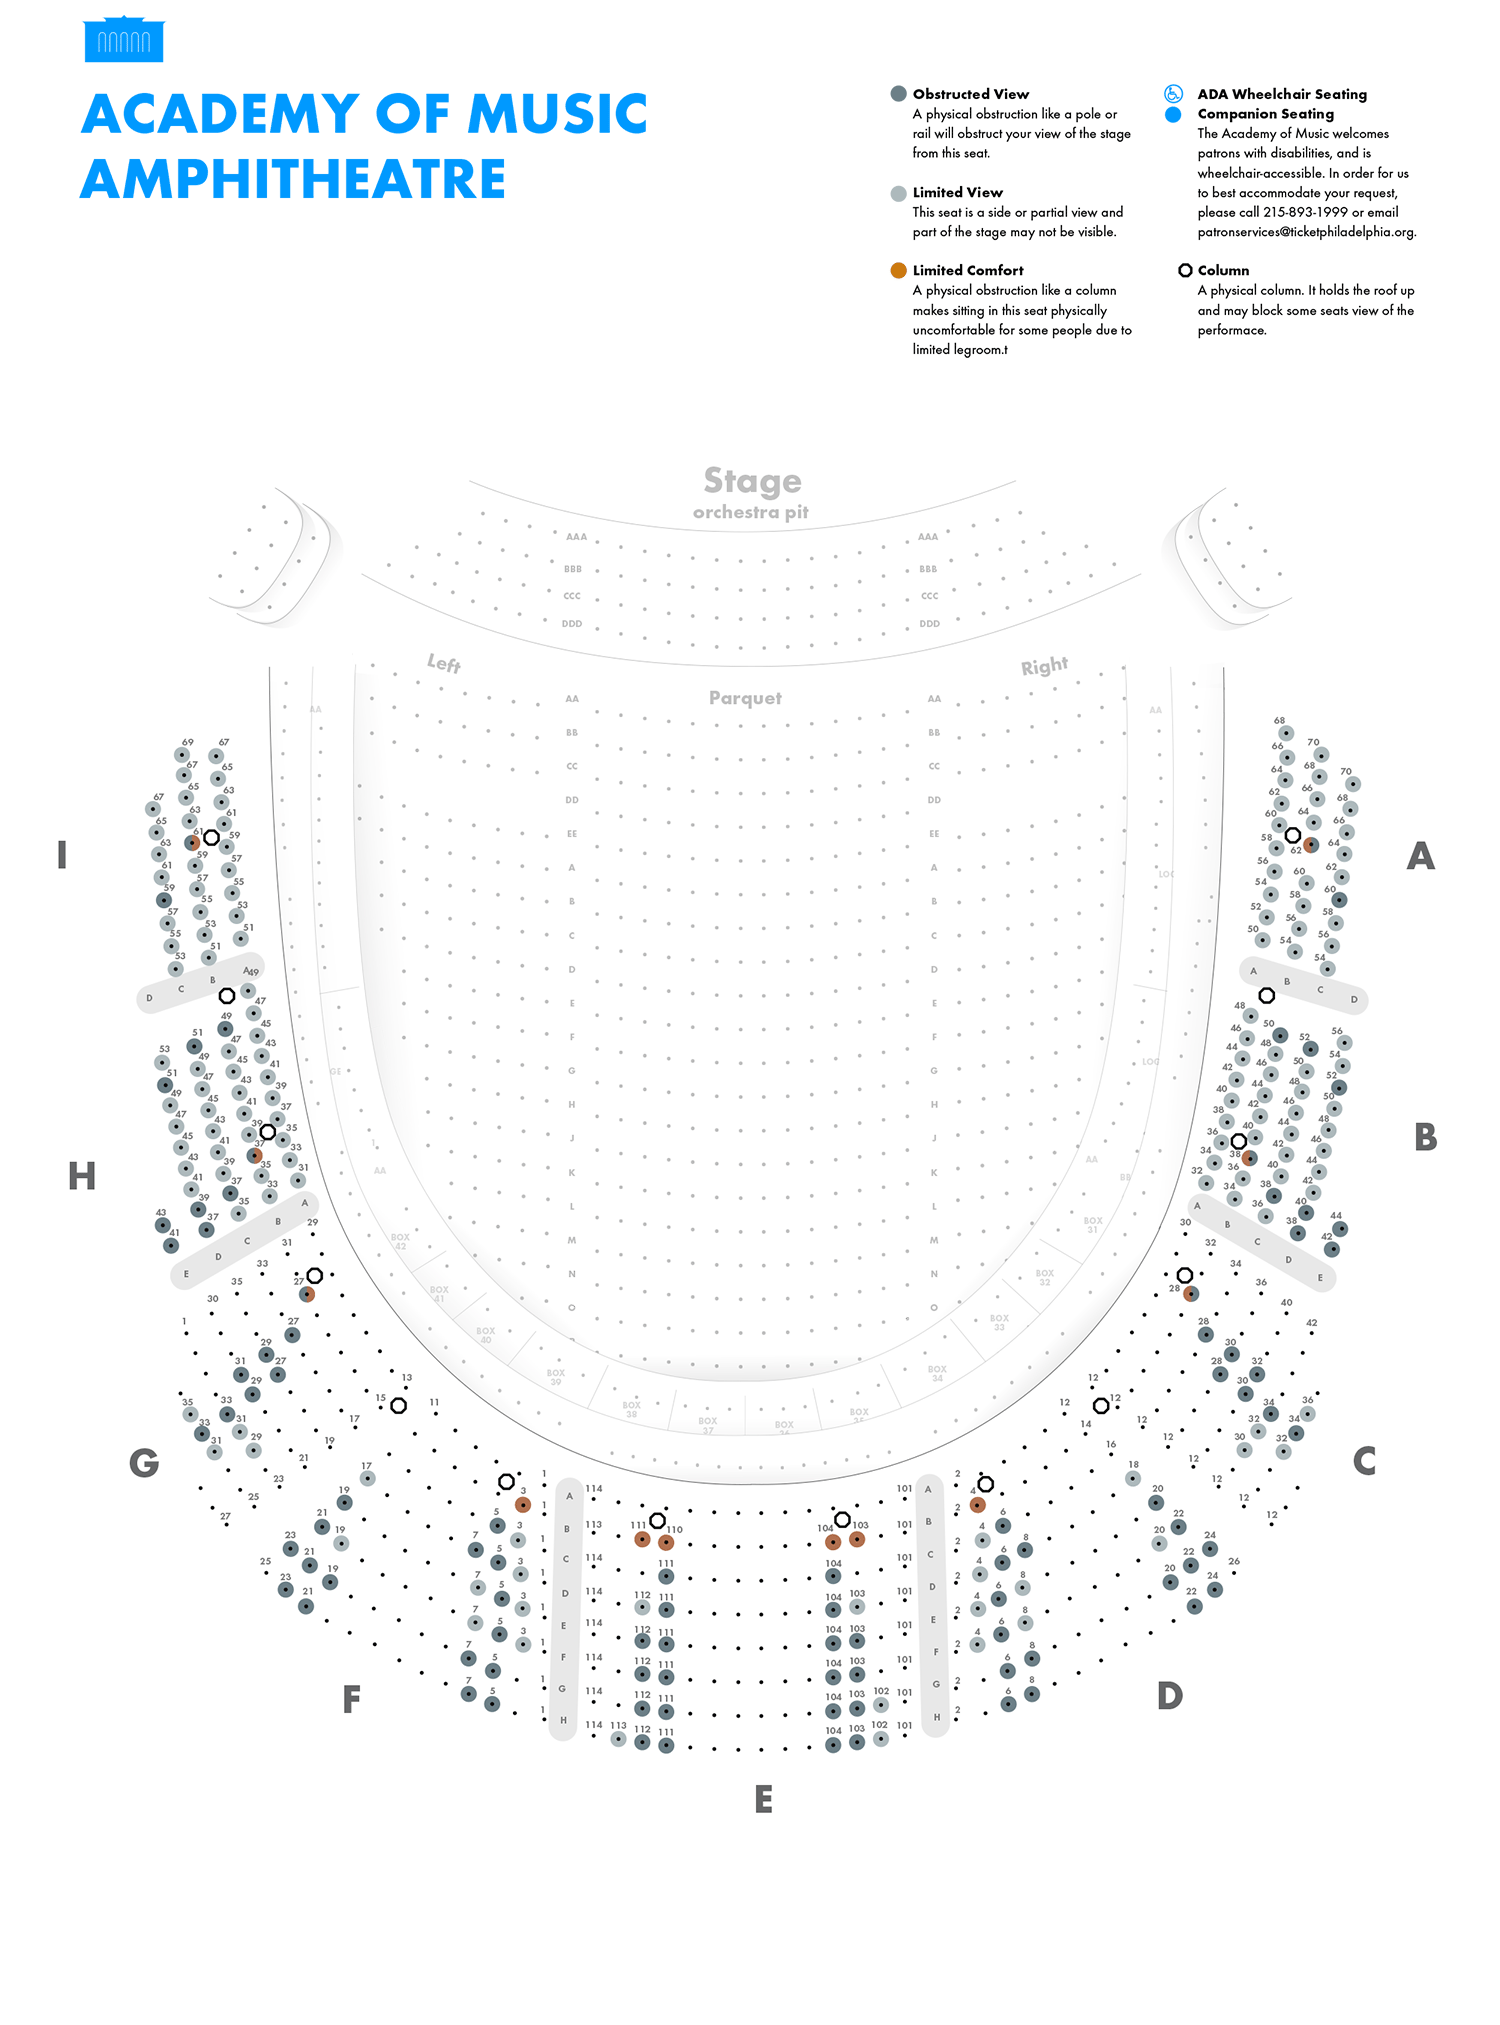 Academy Of Music Amphitheater Seating Chart